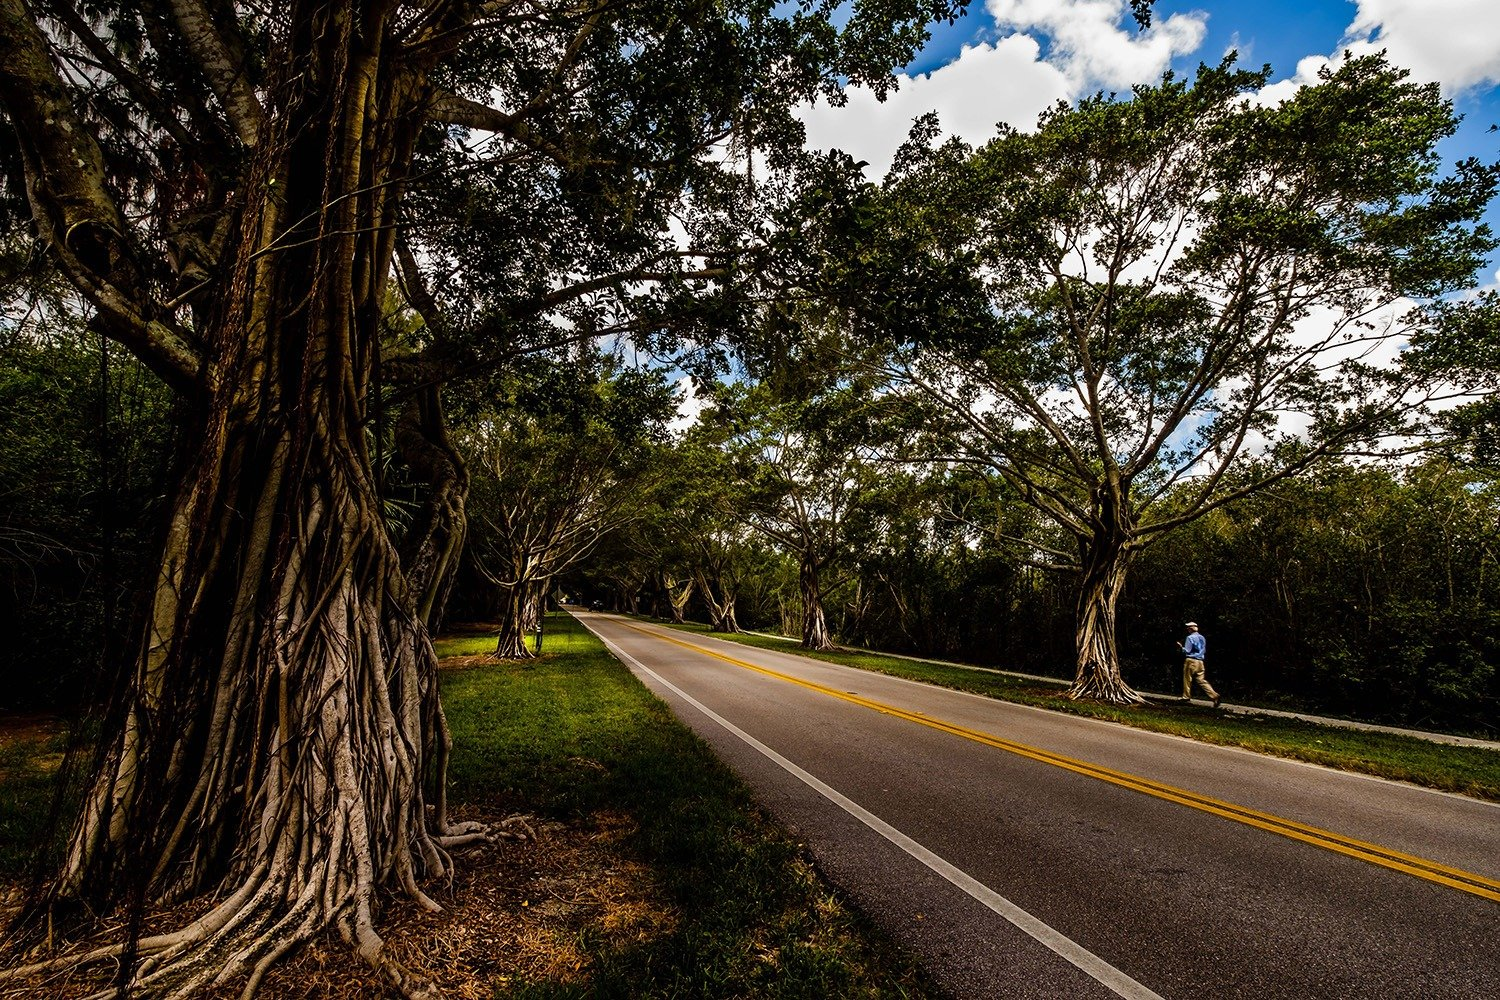 """A1A Bridge Road Banyan"" - Indian River Lagoon National Scenic Byway 